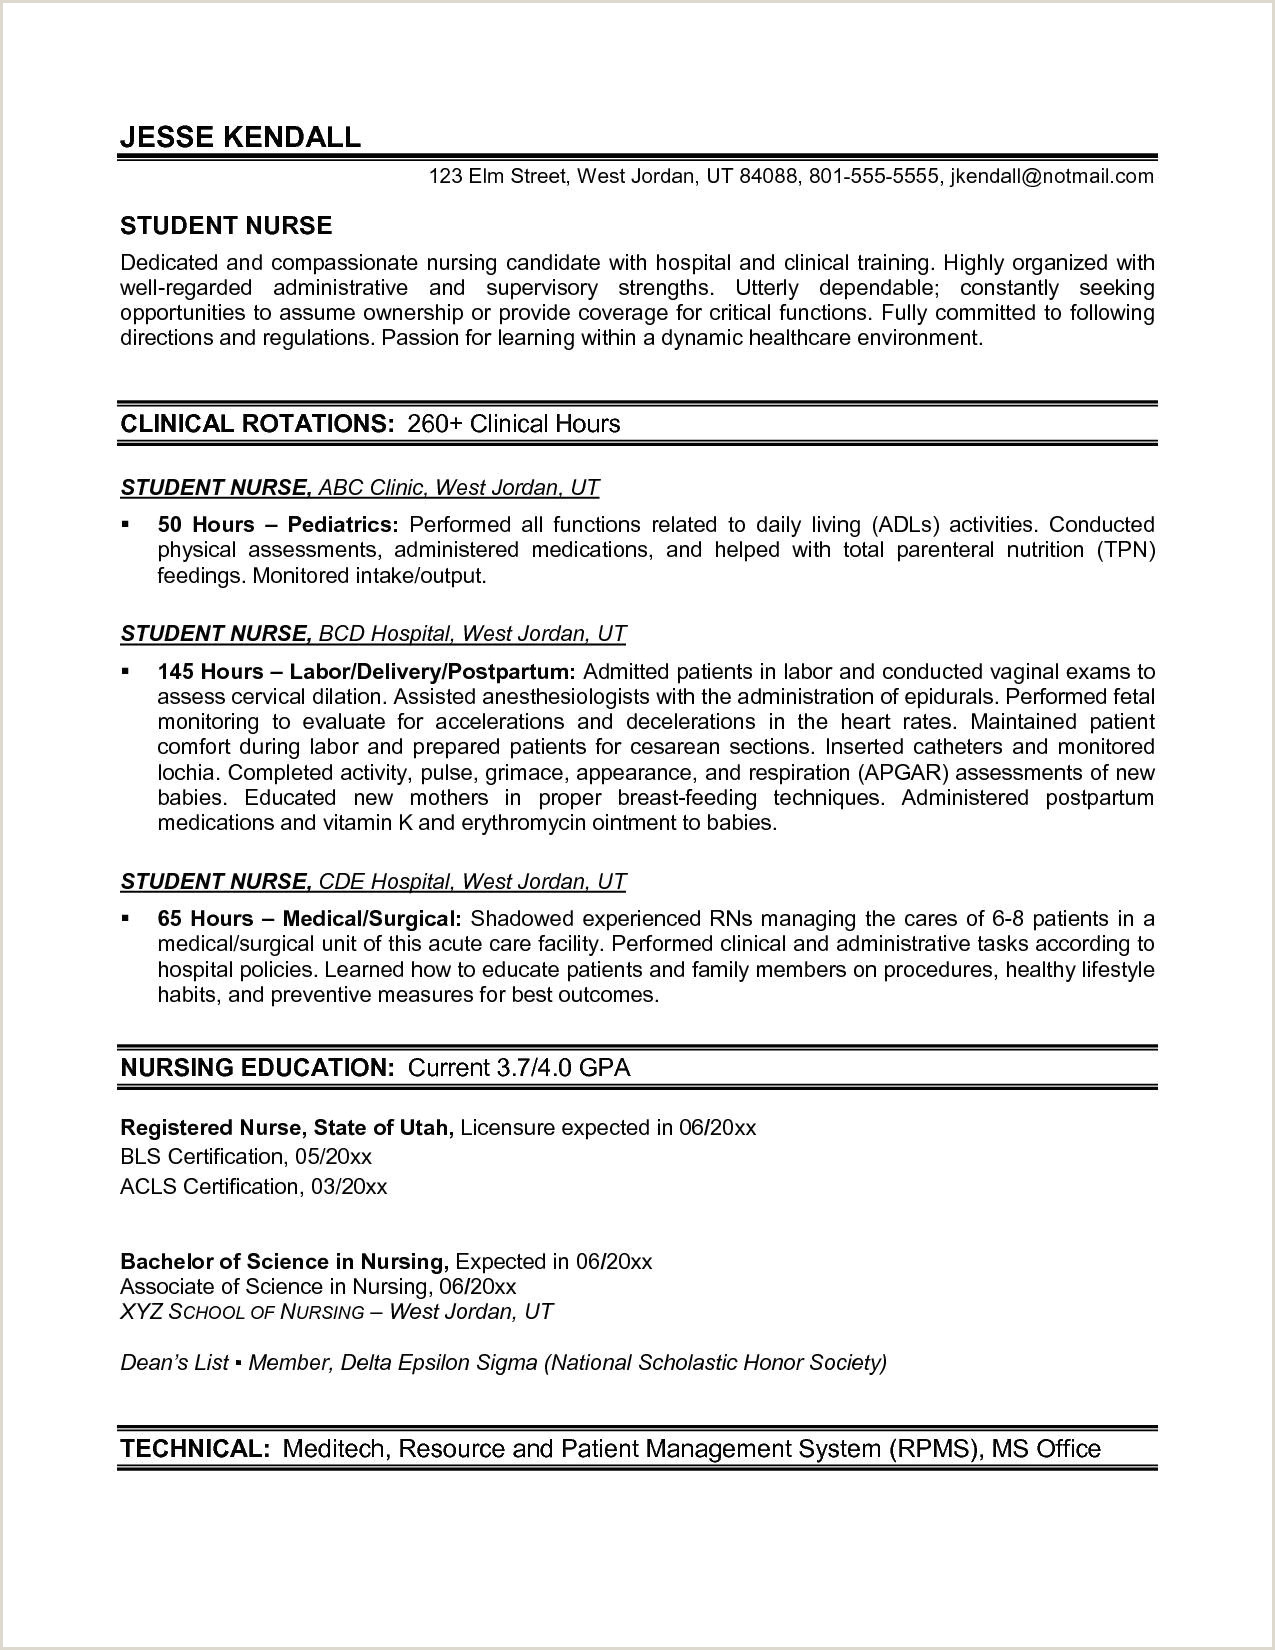 Professional Cv format for Undergraduate Students Entry Level Nurse Practitioner Resume Inspirational New Grad